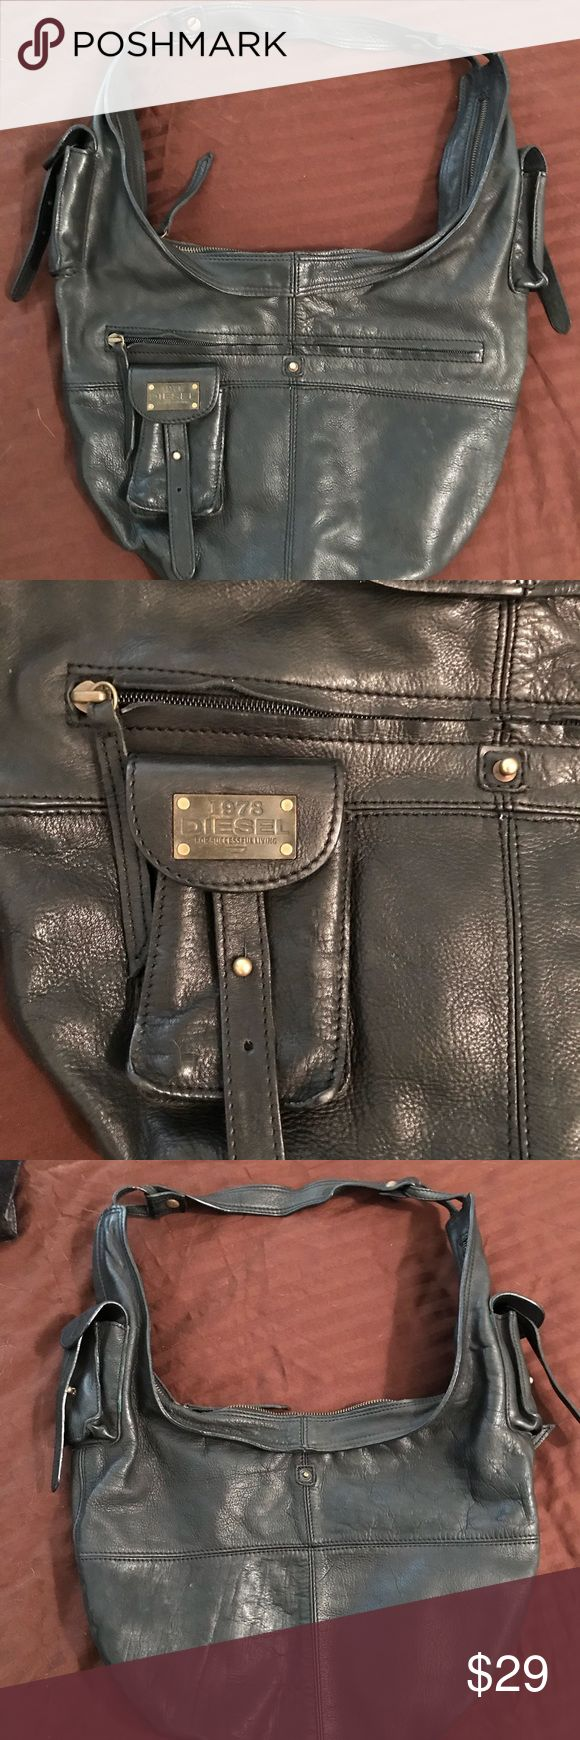 Diesel leather shoulder bag A beautiful pre owned condition Authentic Diesel leather shoulder bag. The bag is in great condition! Good luck! Diesel Bags Shoulder Bags